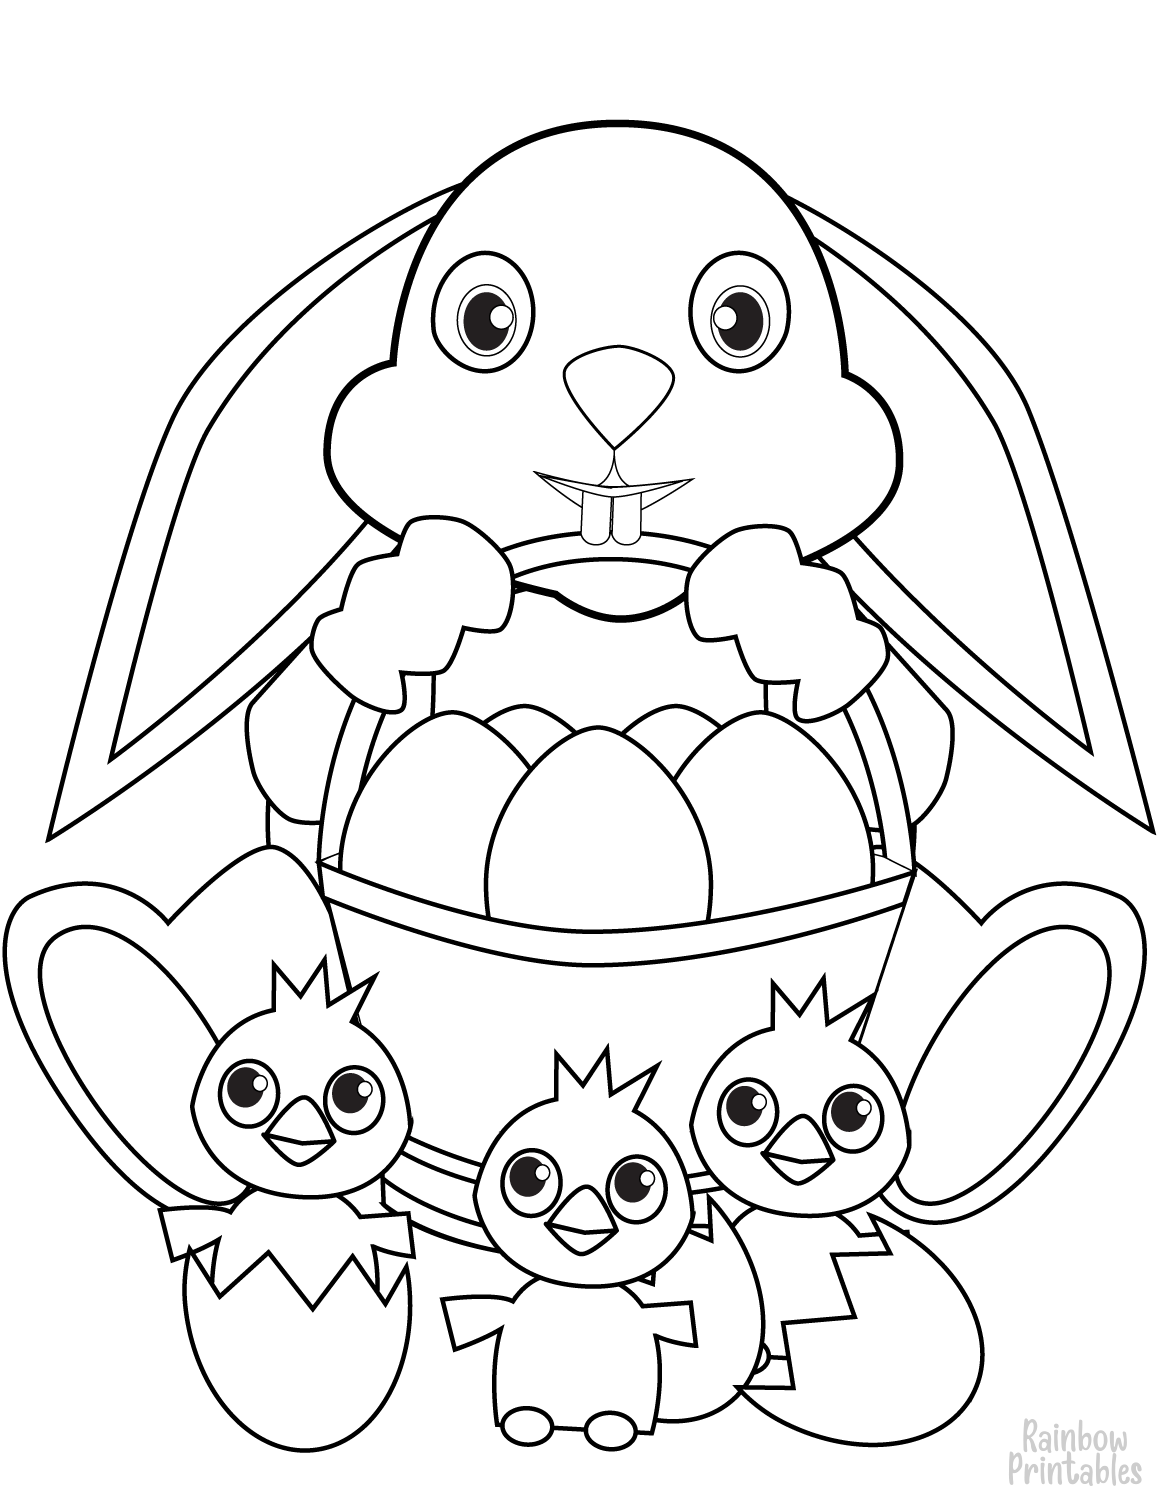 Easter Rainbow Printables